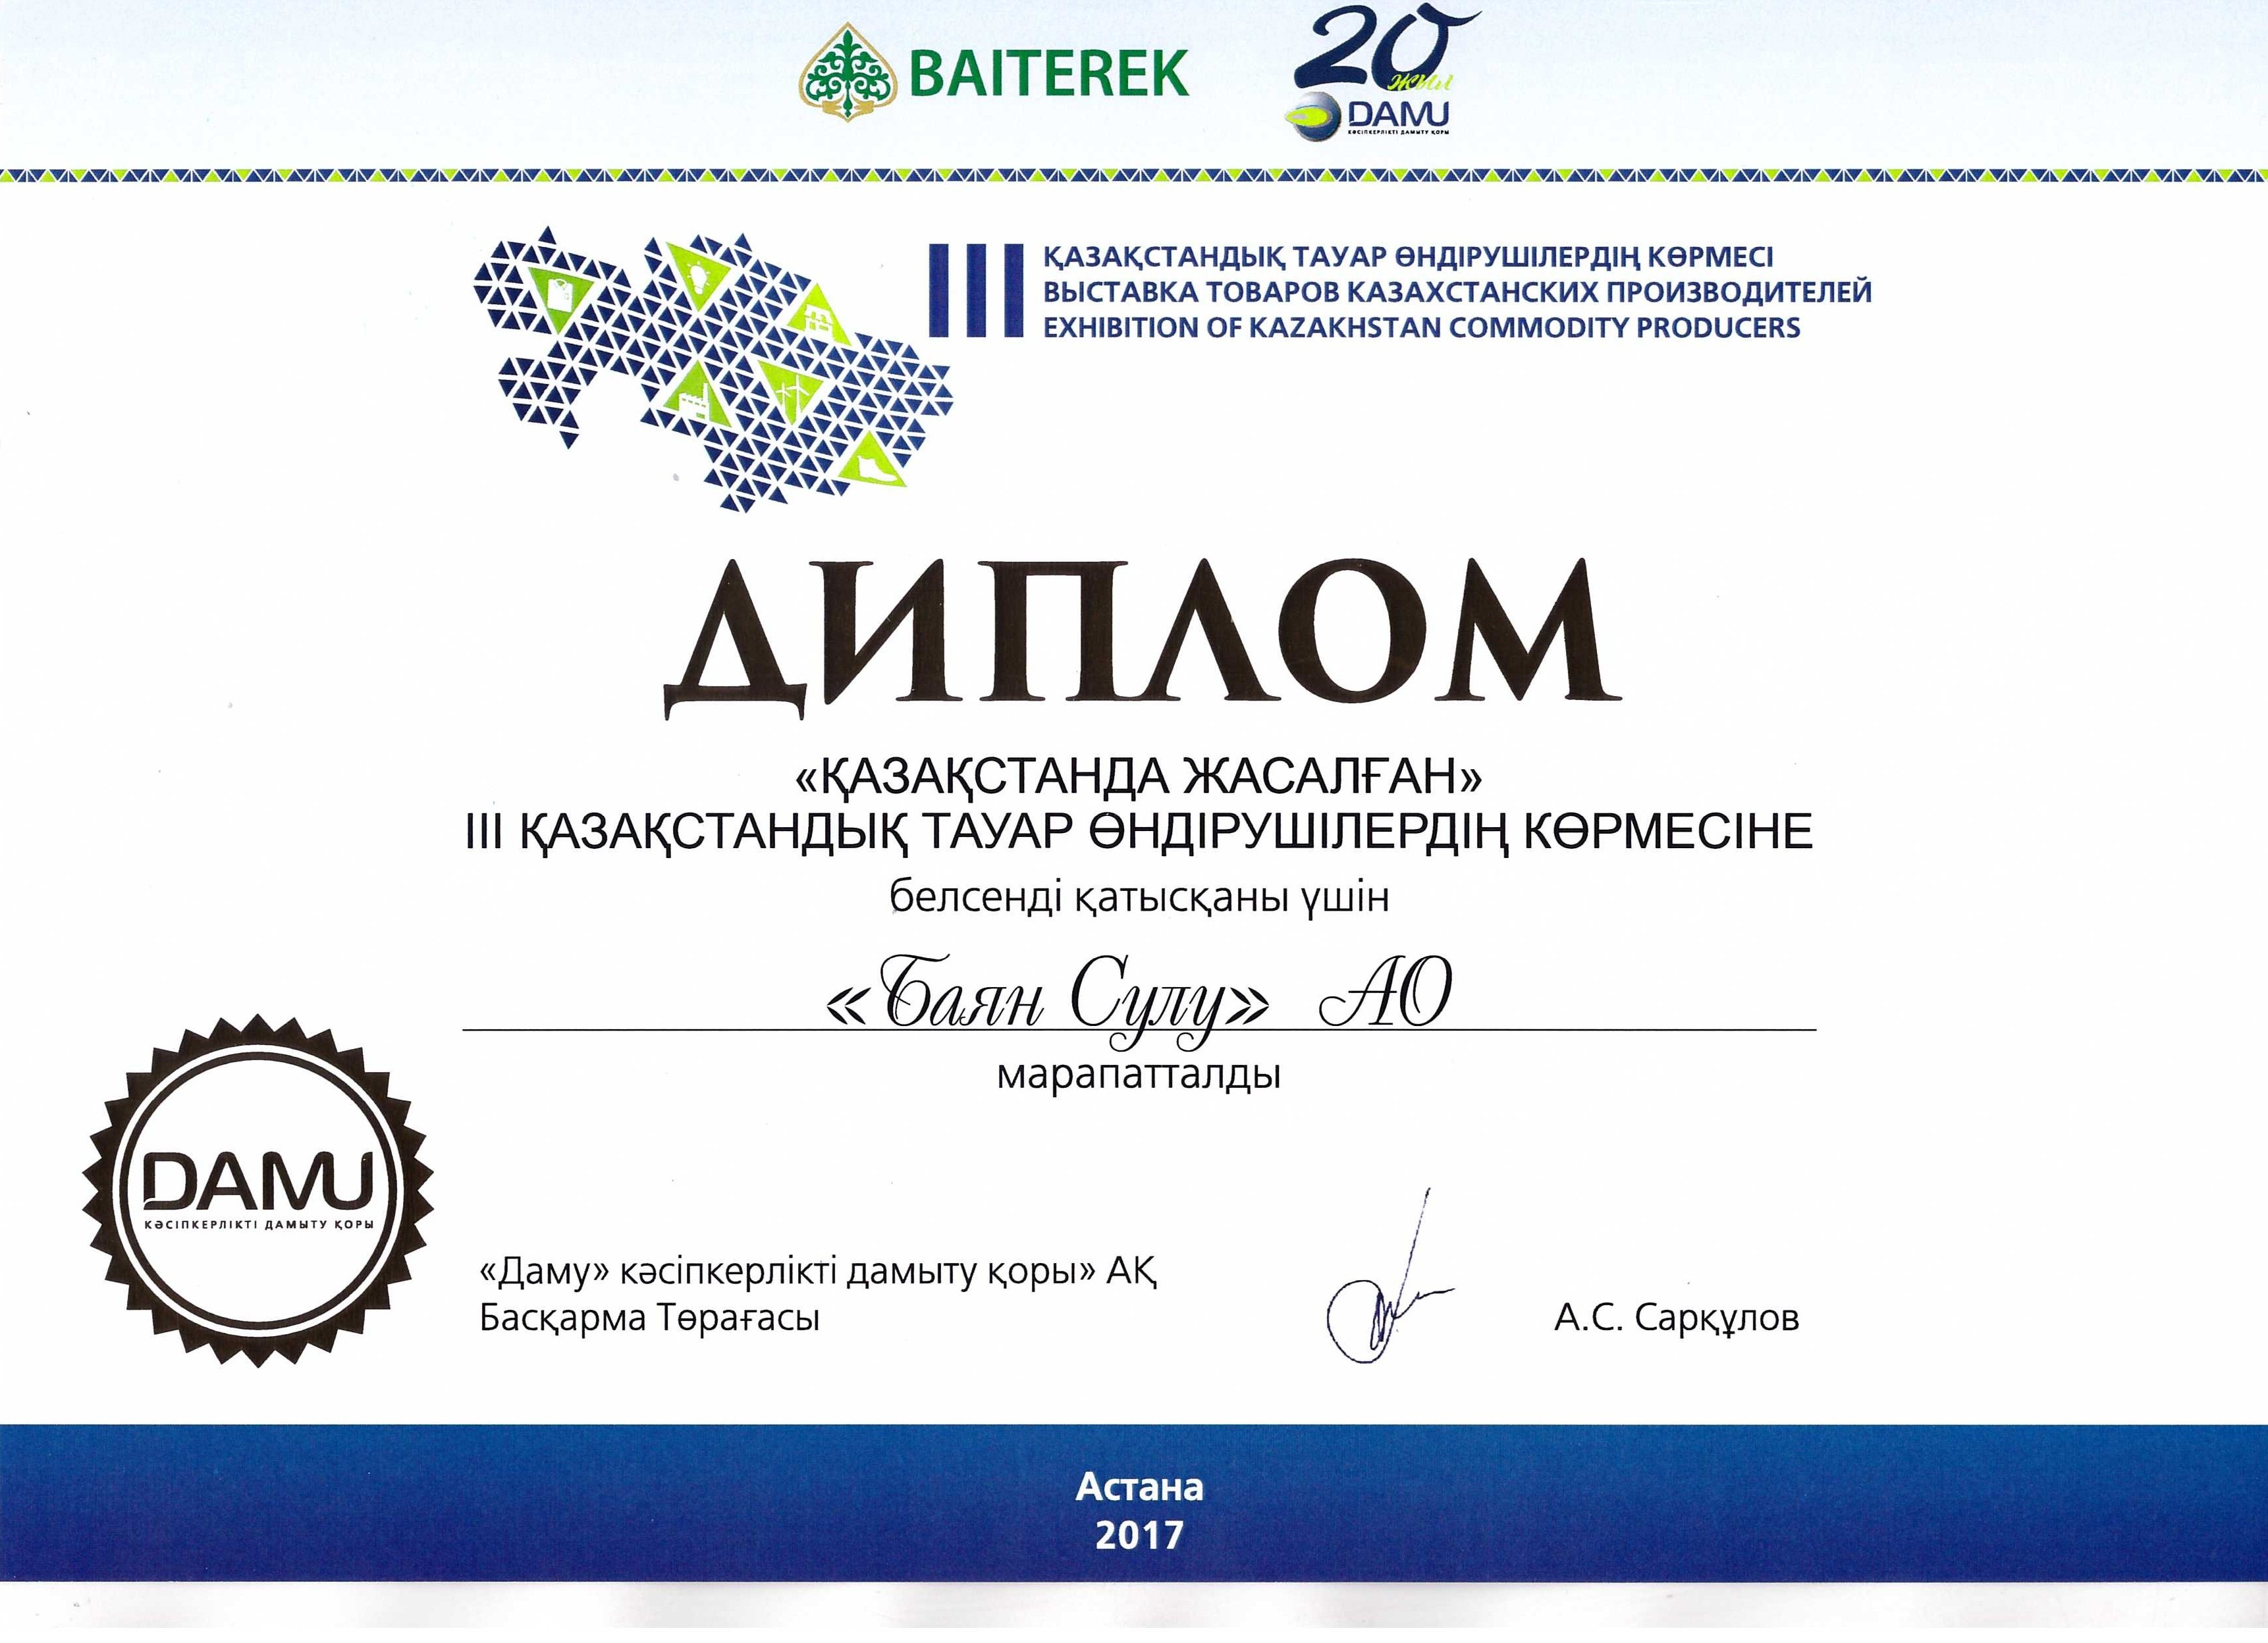 """Bayan Sulu"" company has taken part in the national exhibition of domestic manufacturers ""Made in Kazakhstan"" which was organized by Damu Fund and held in Astana from 28th to 30th of July, 2017."